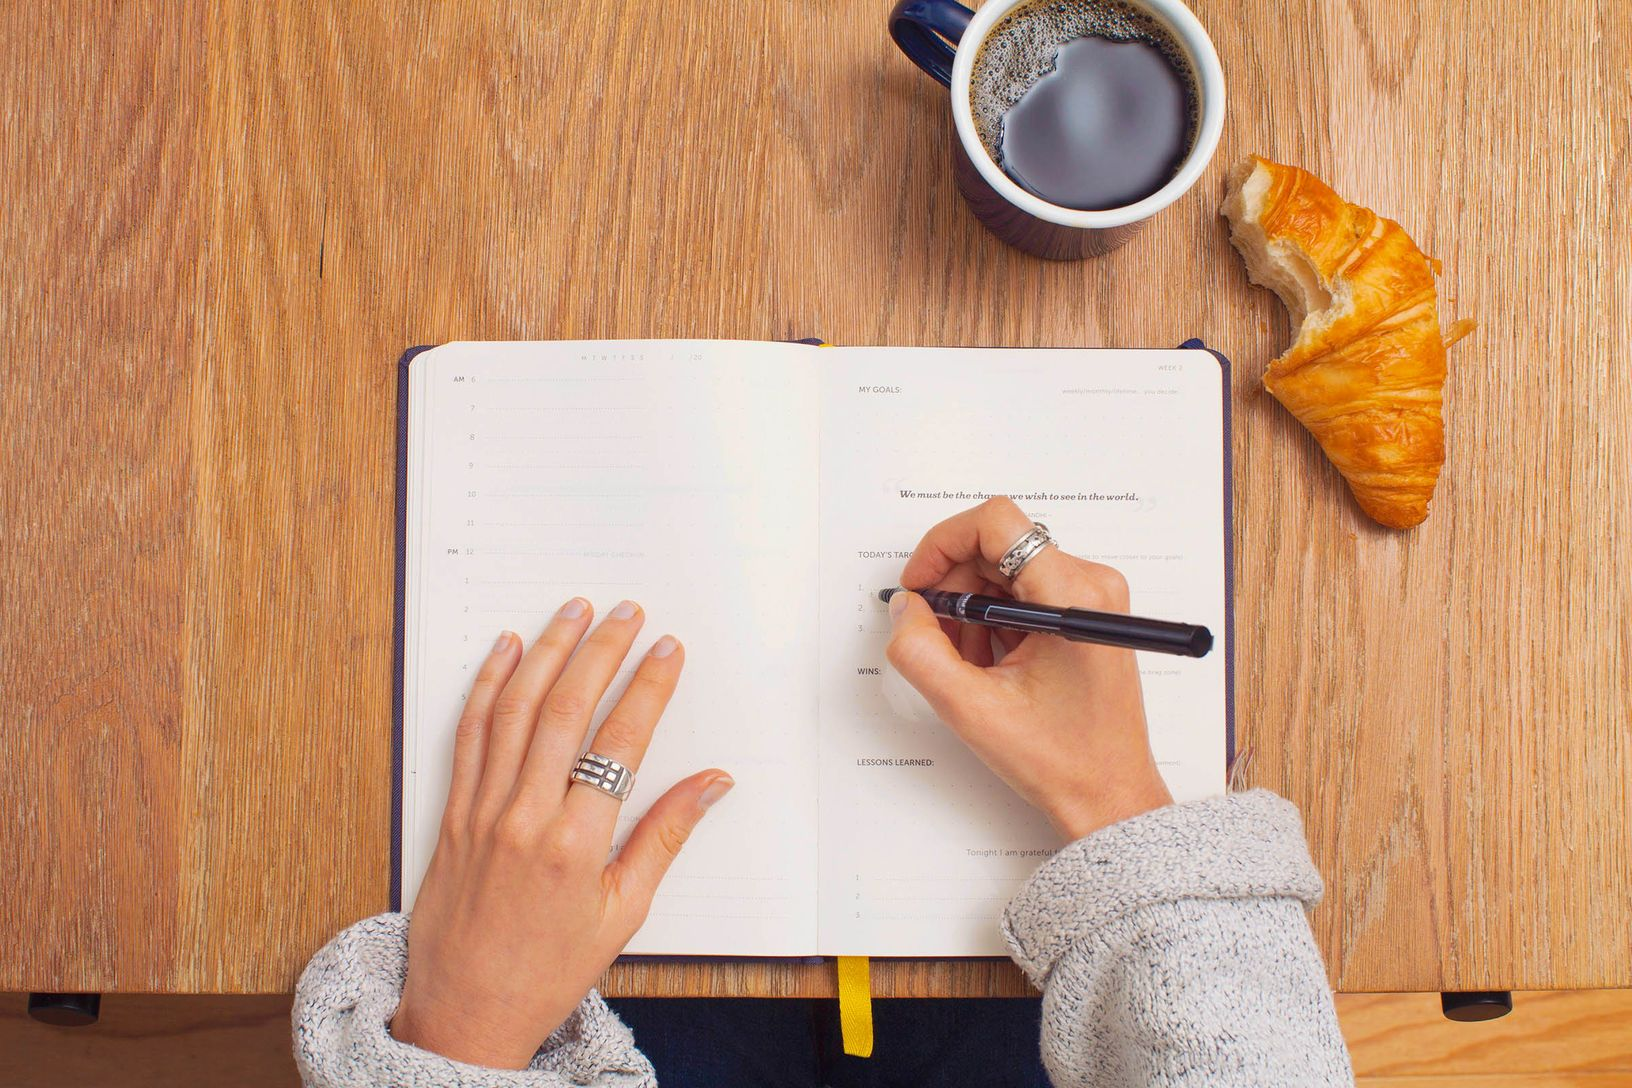 Overview of a pair of woman's hands writing with pen on a notebook laid open on a wooden desk, with a mug of coffee and a bitten croissant nearby